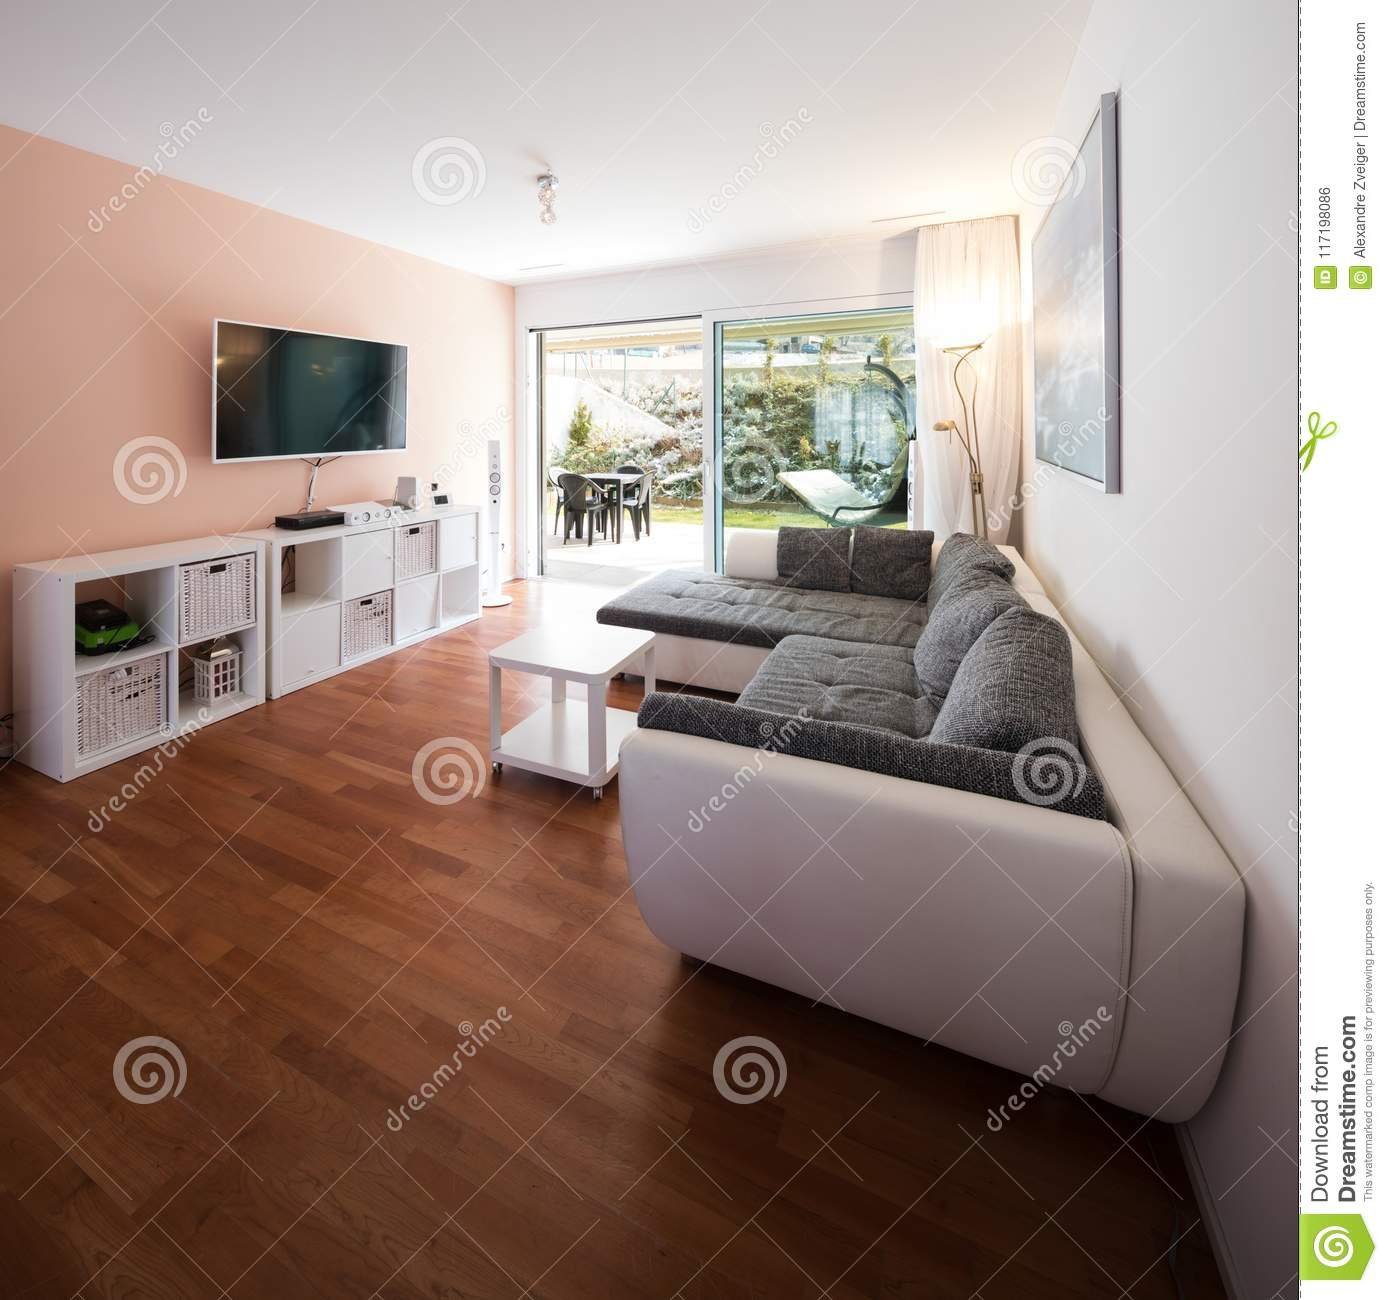 Living Room With Window And Garden View. Stock Photo - Image ...